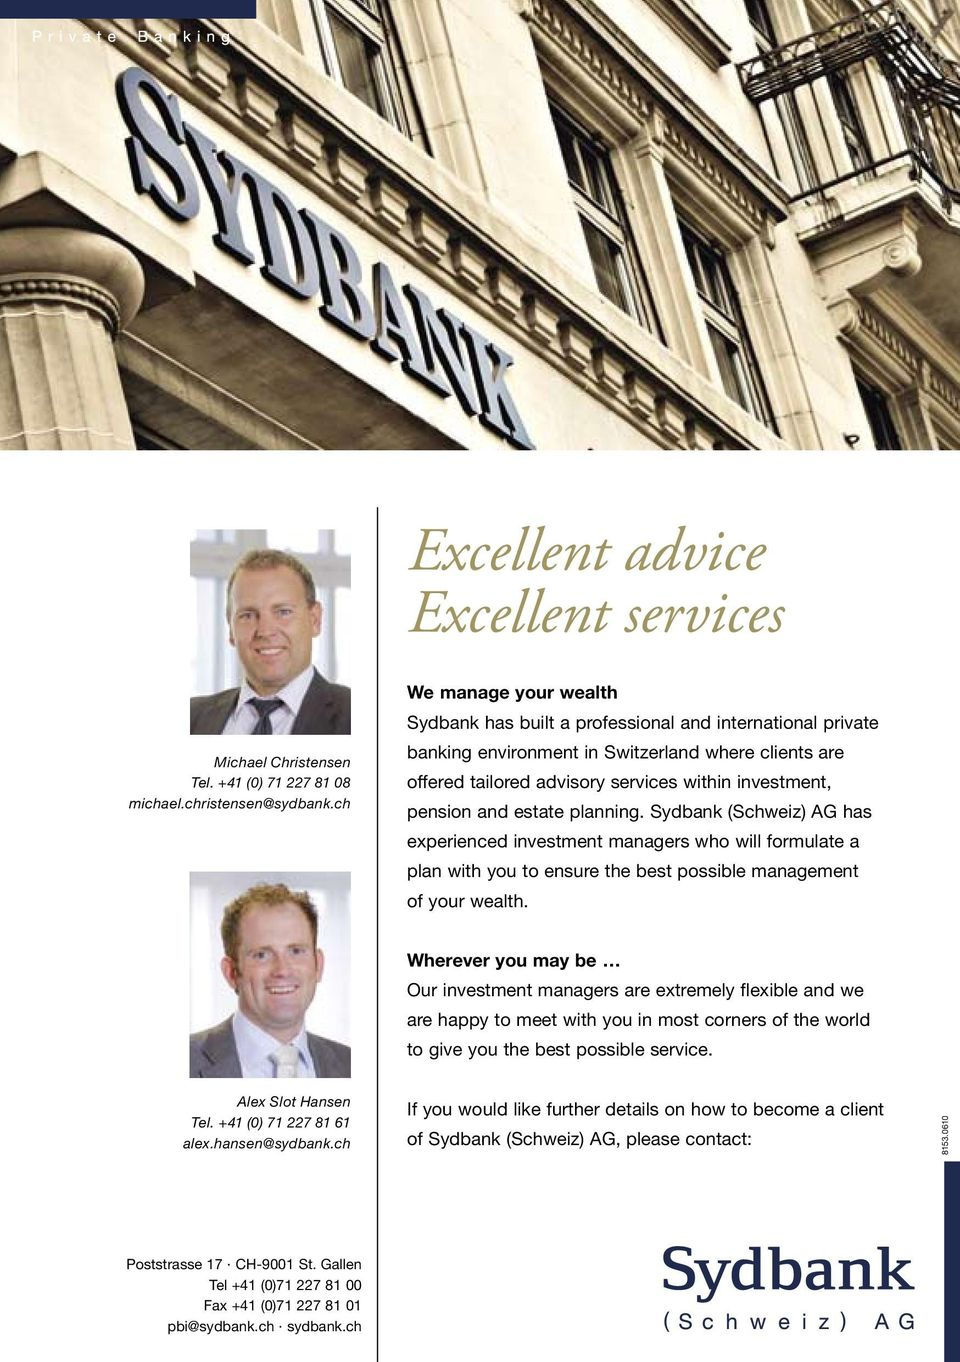 runtom) offered tailored advisory services within investment, pension and estate planning.